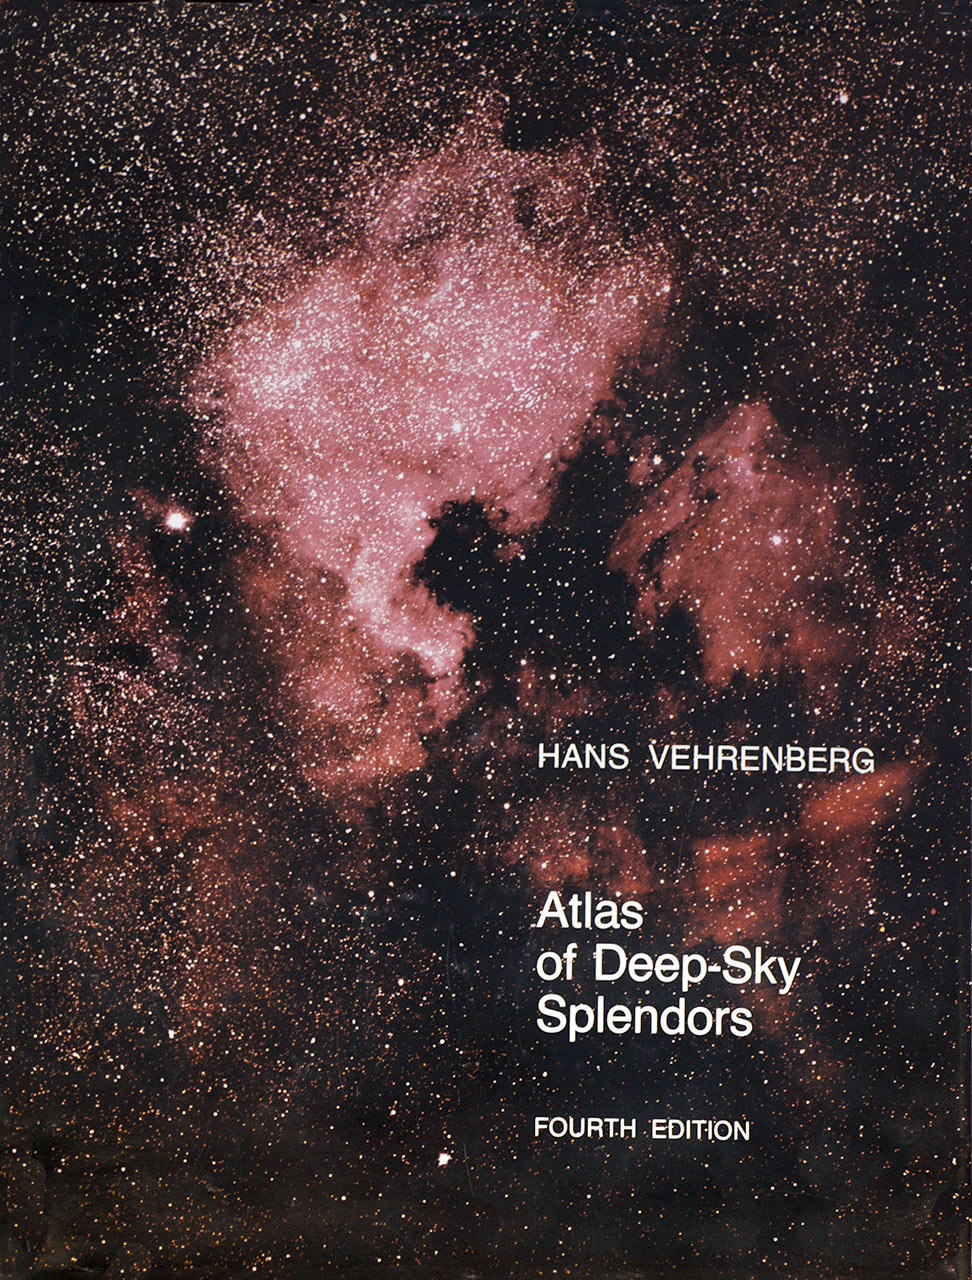 Atlas-of-Deep-Sky-Splendors.jpg